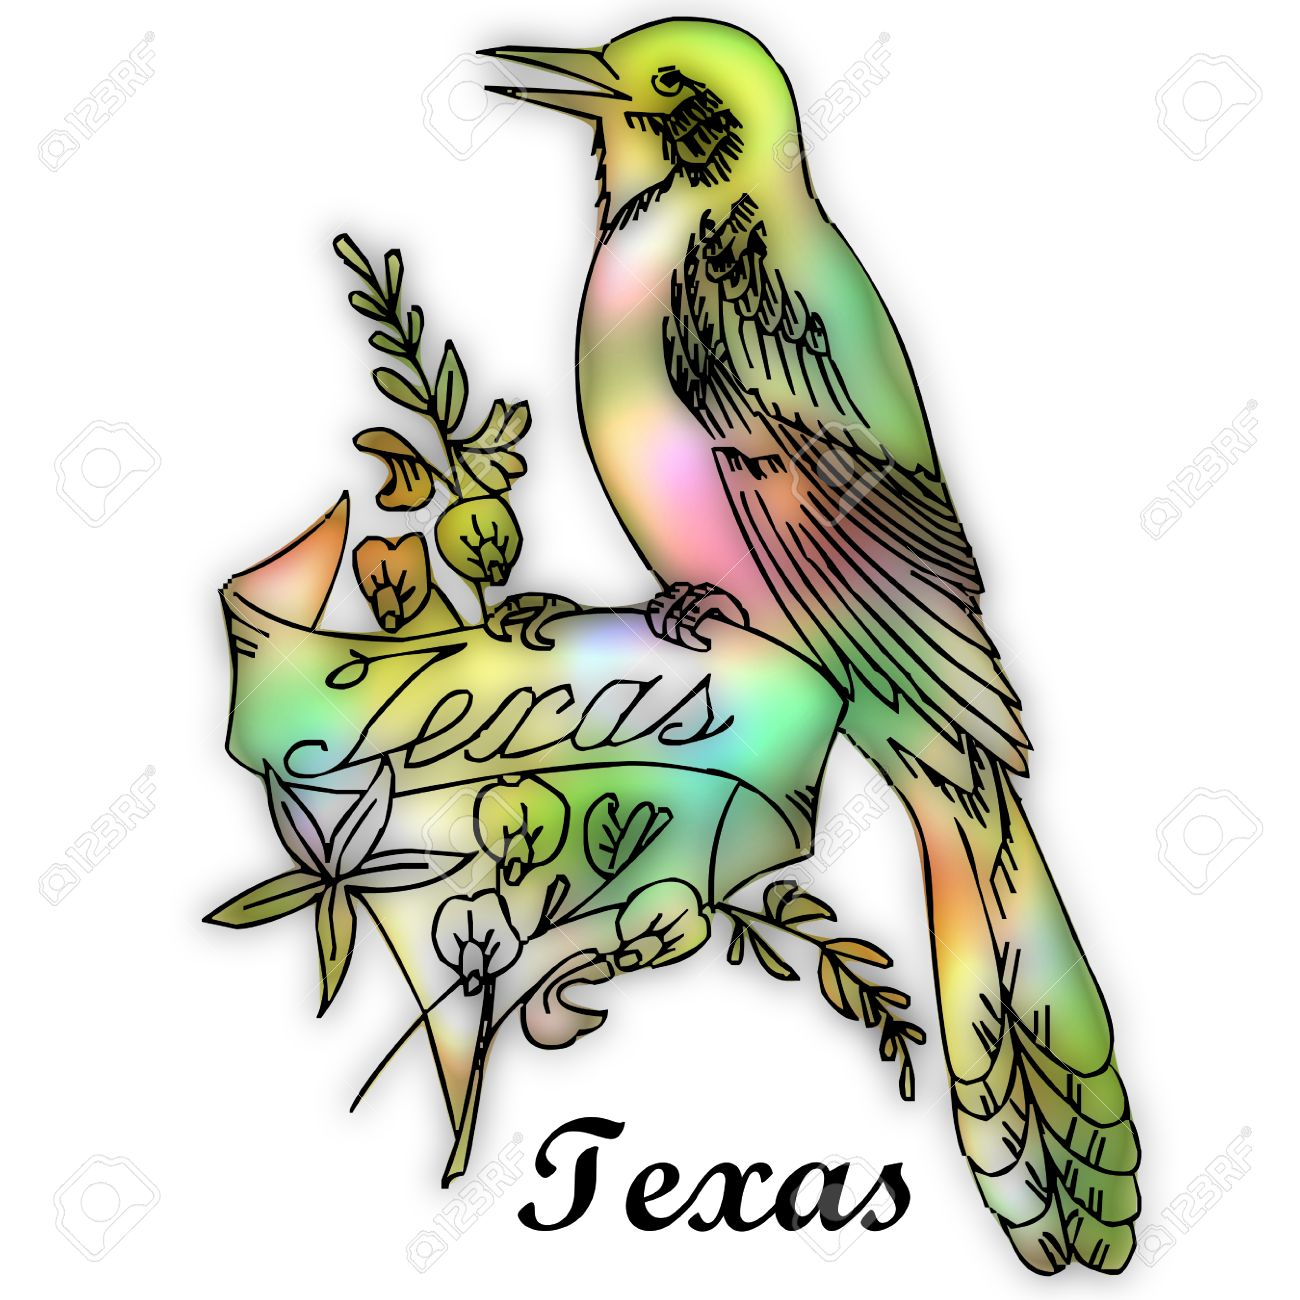 Texas State Bird Stock Photo, Picture And Royalty Free Image